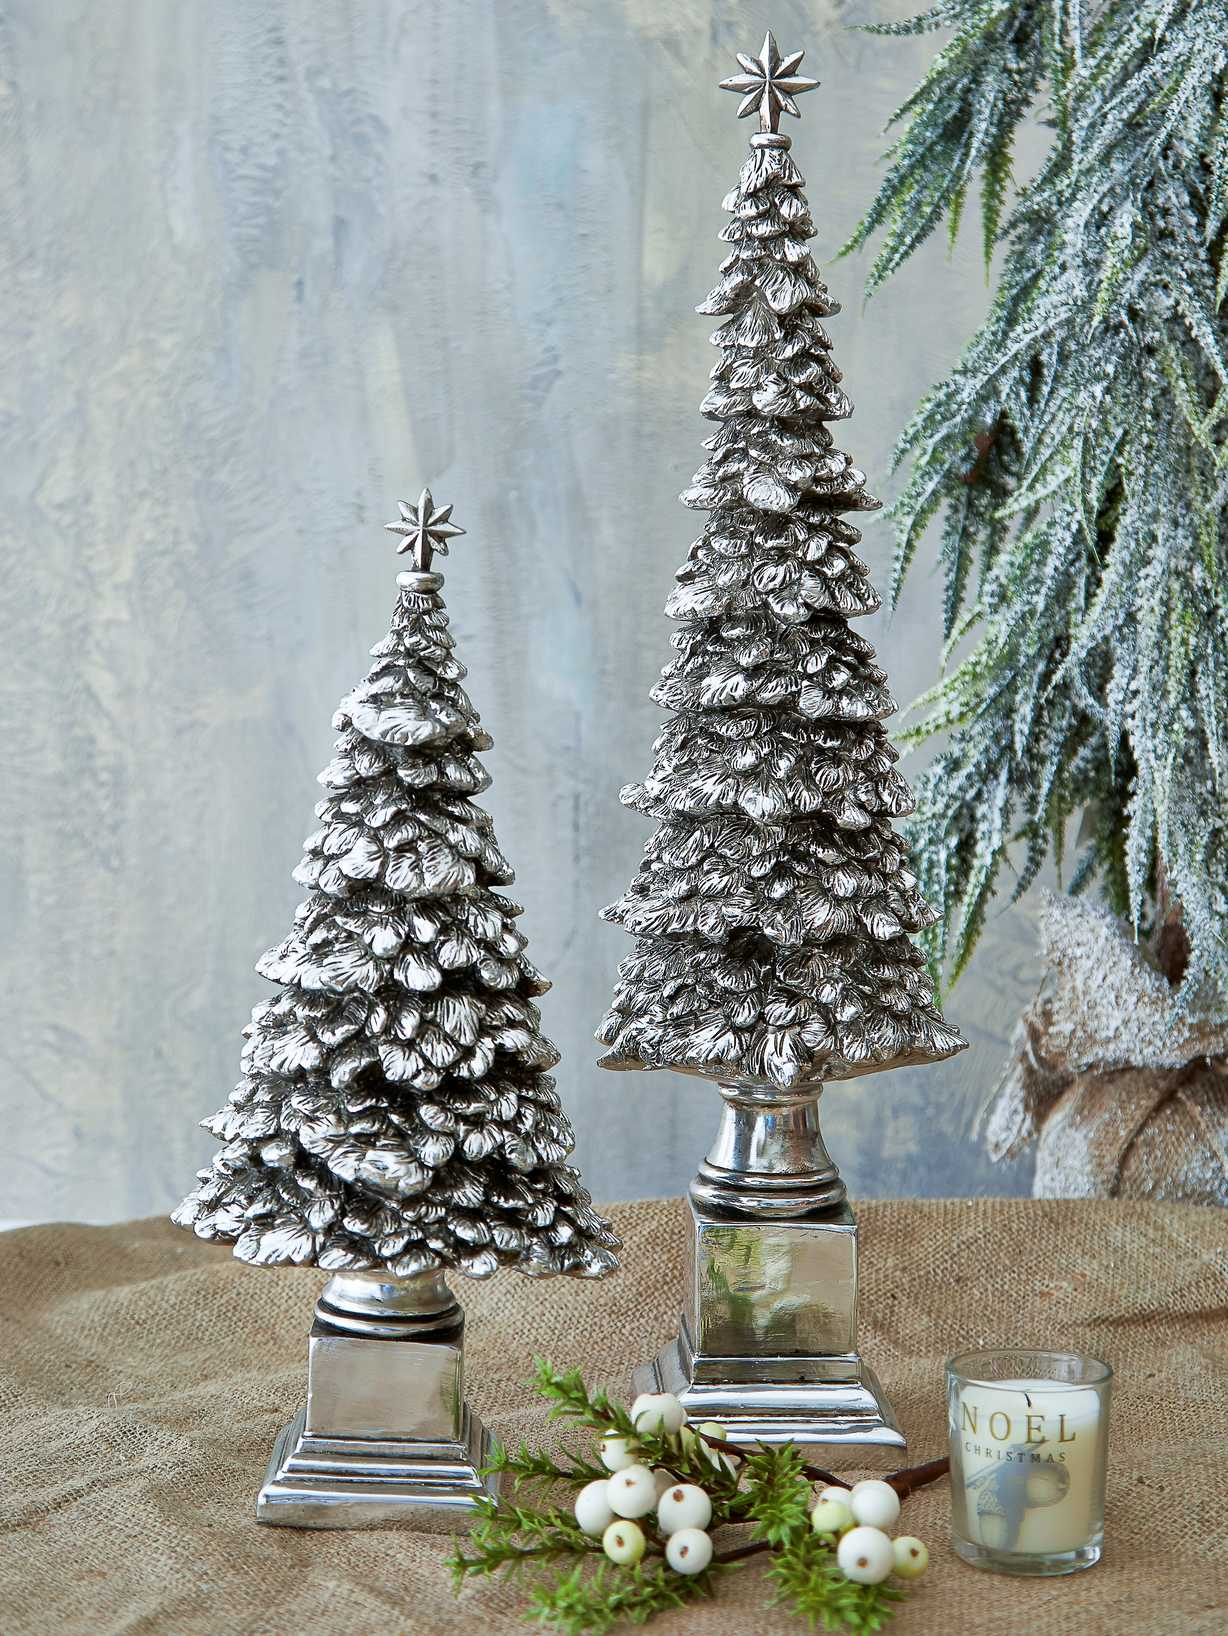 Nordic House Decorative Christmas Trees